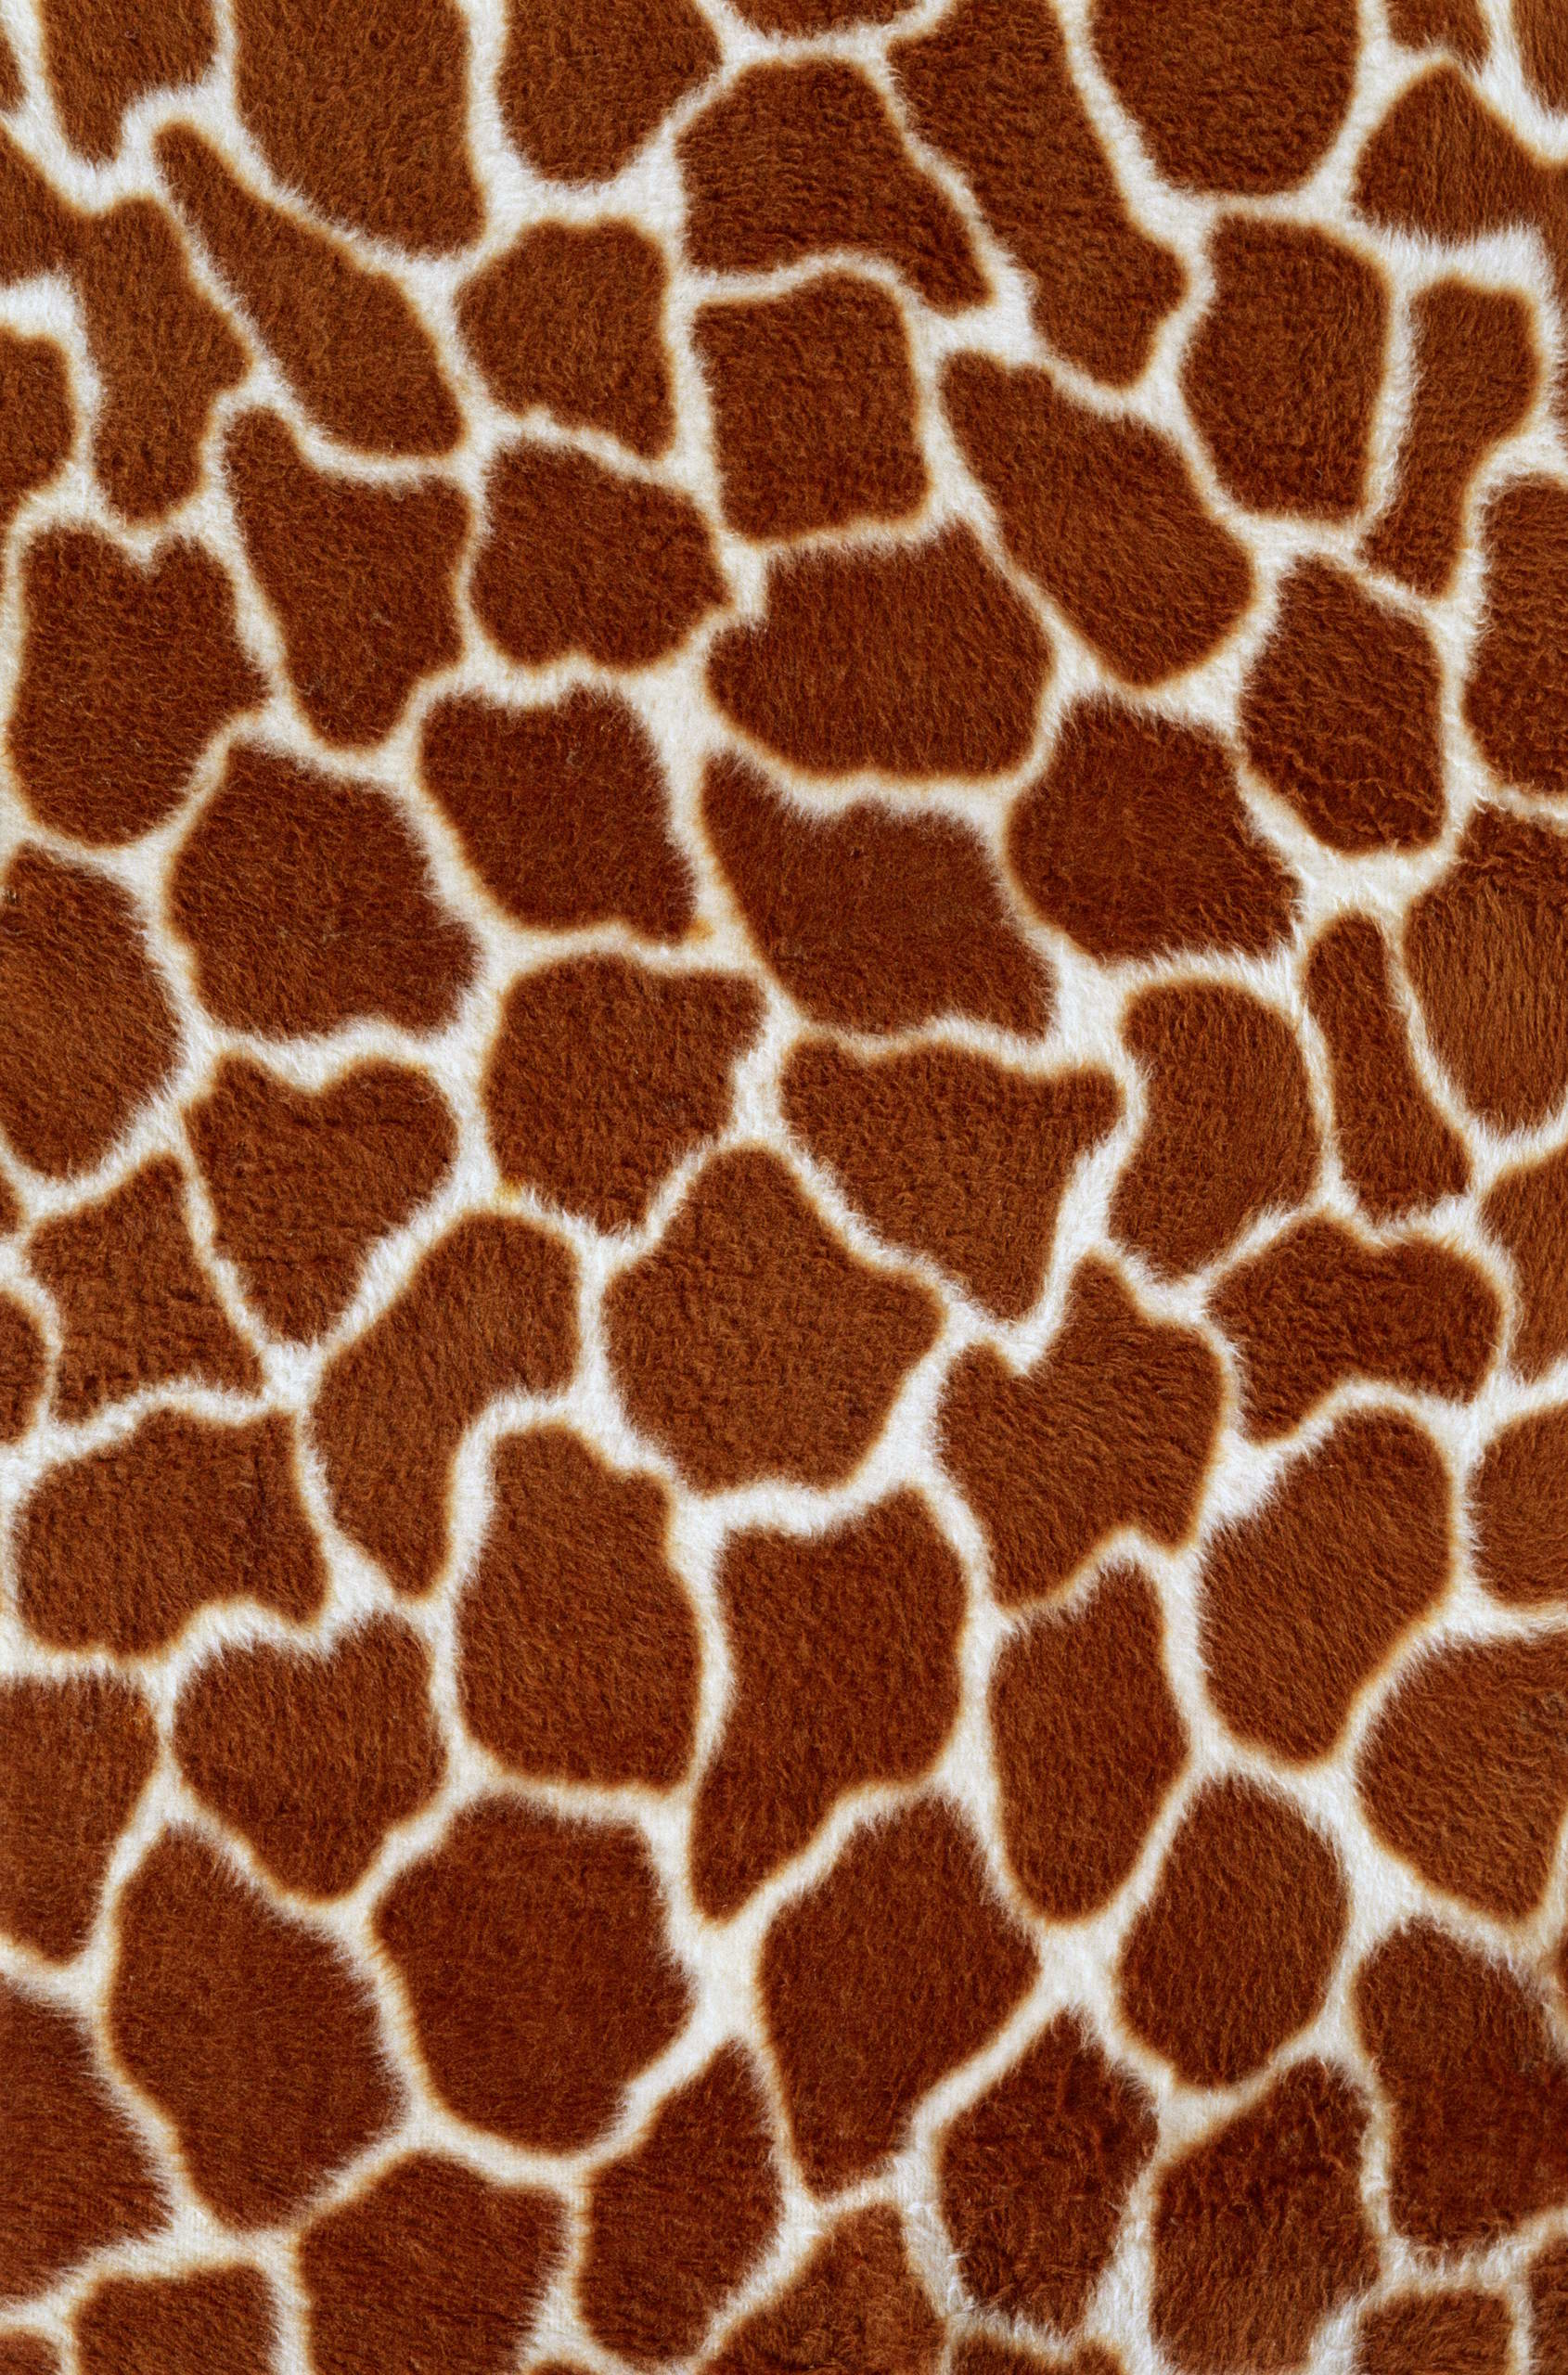 animal skin patterns giraffe - photo #21